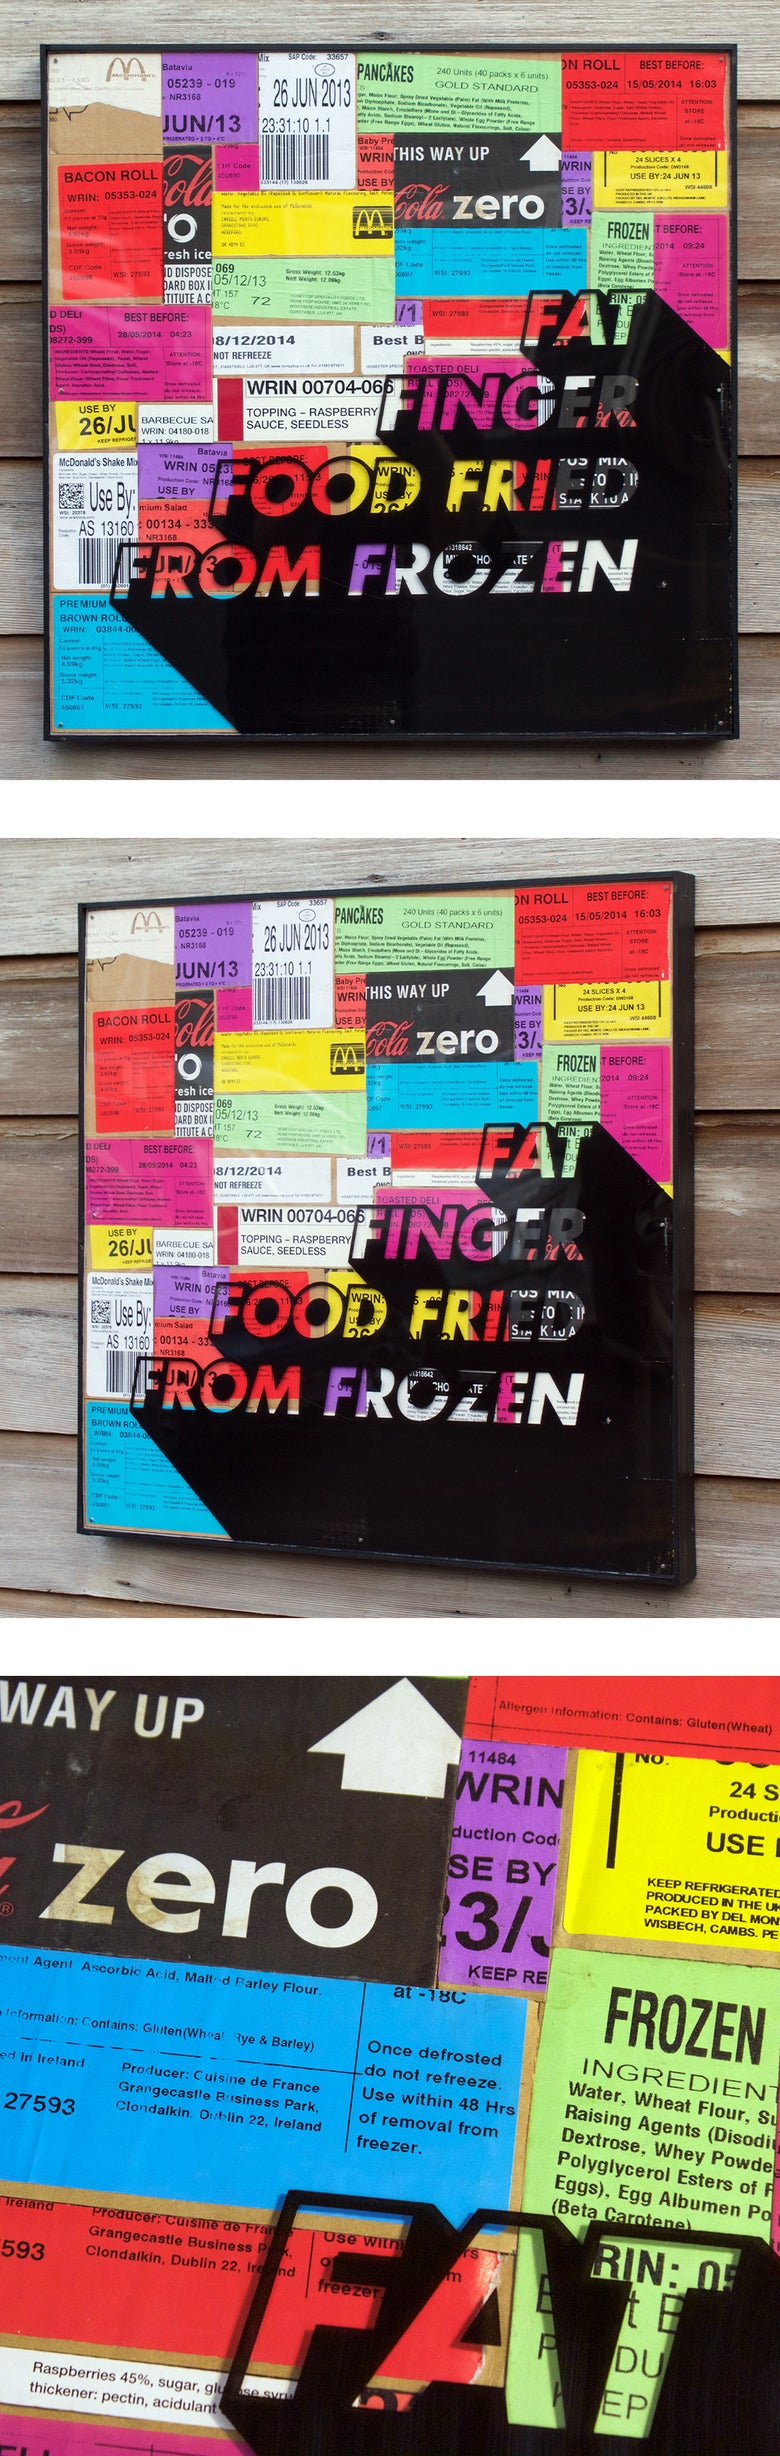 Image of Fat Finger Food Fried From Frozen